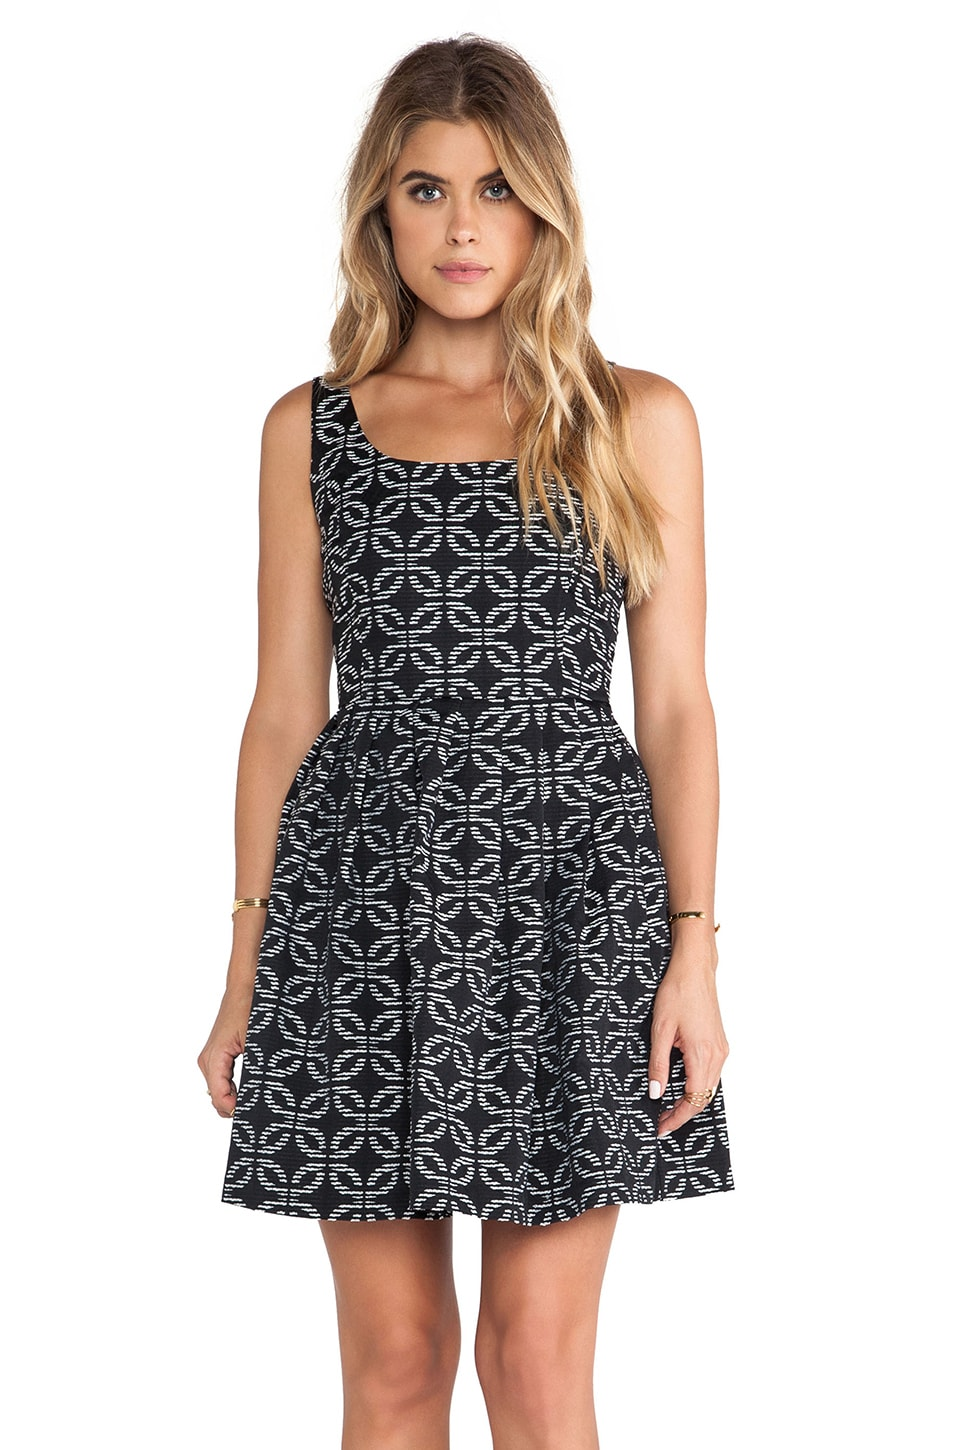 BB Dakota Dallias Tank Dress in Black & White